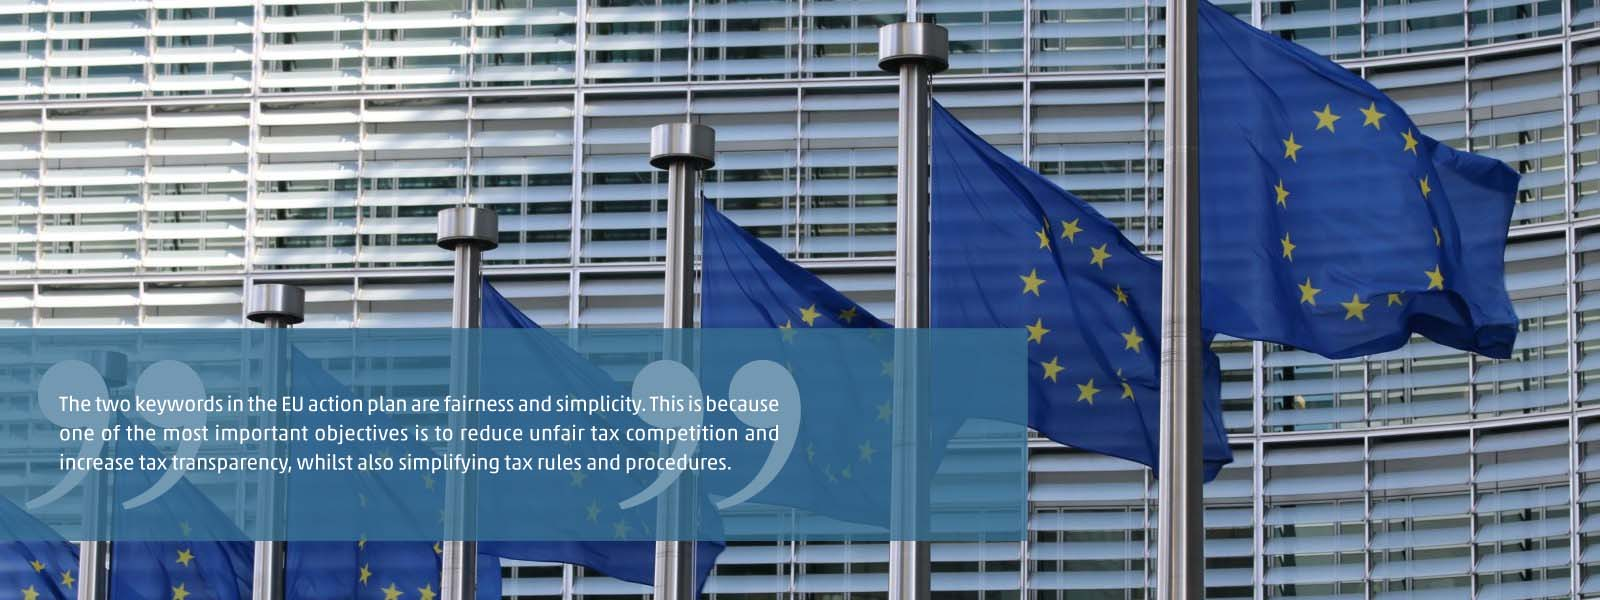 New EU tax package for fair and simple taxation